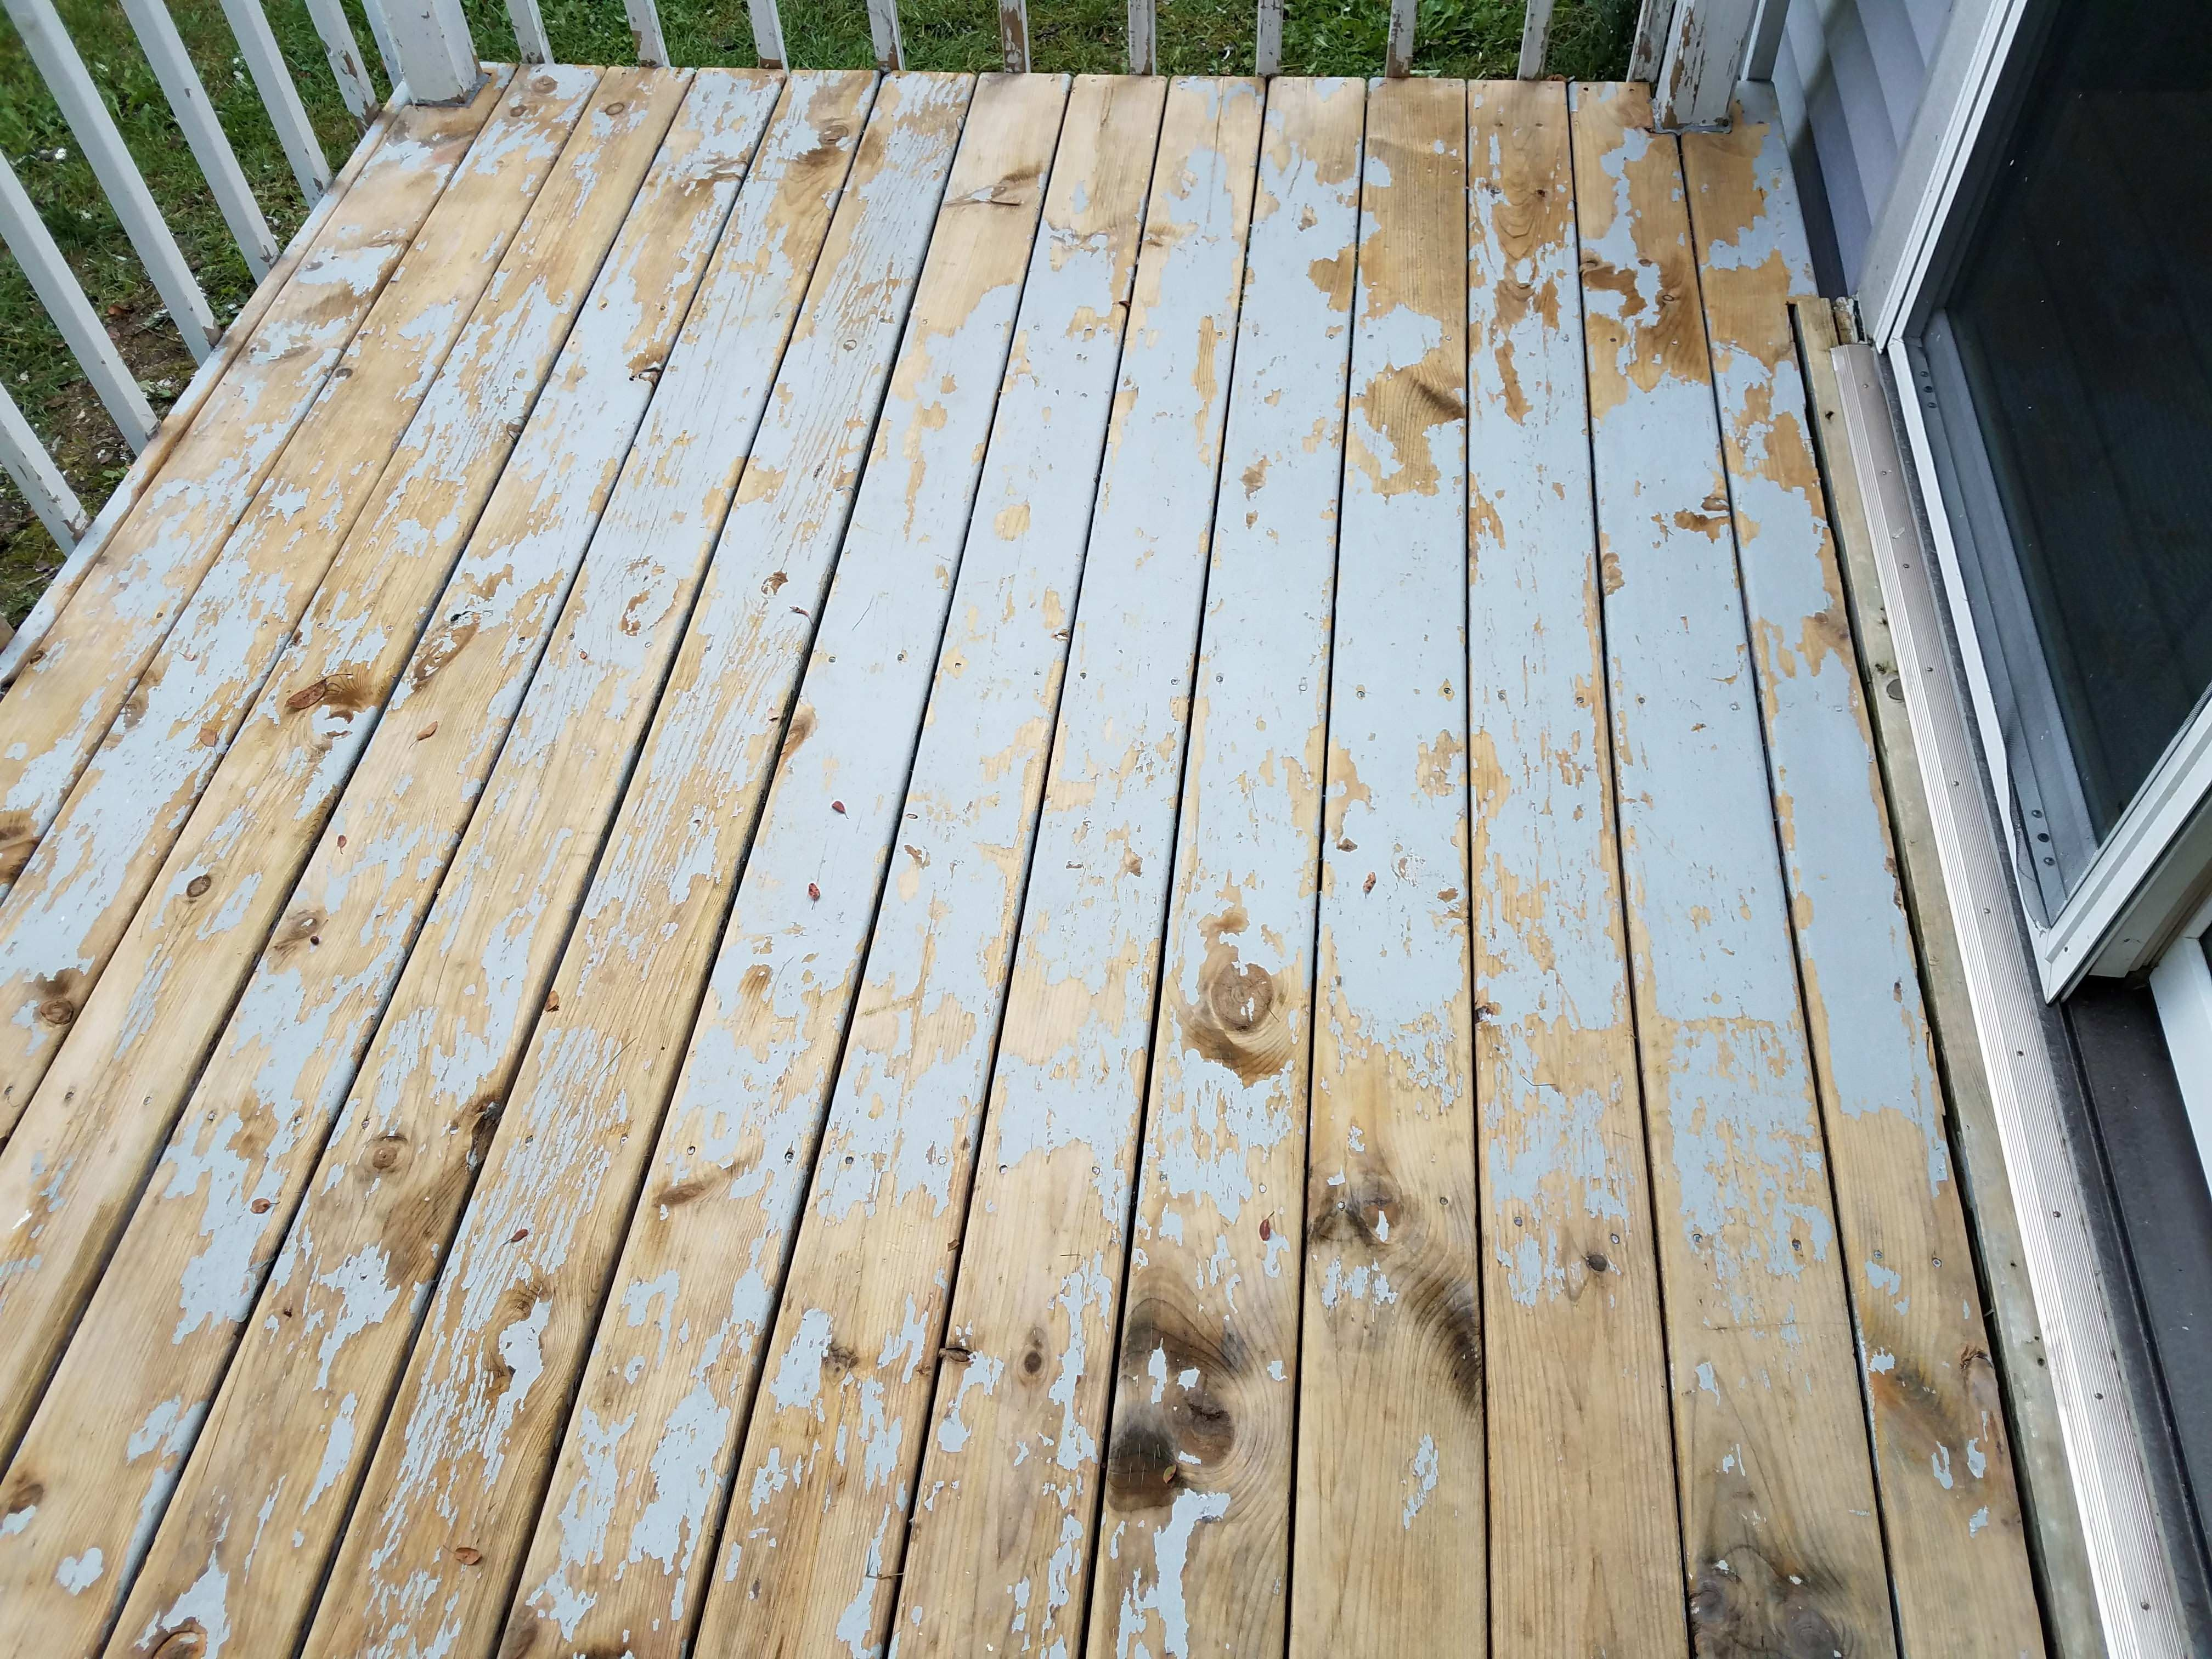 How Do I Strip Acrylic Paint Off Wooden Deck Handmade Crafts Howto Diy Decks Stripping